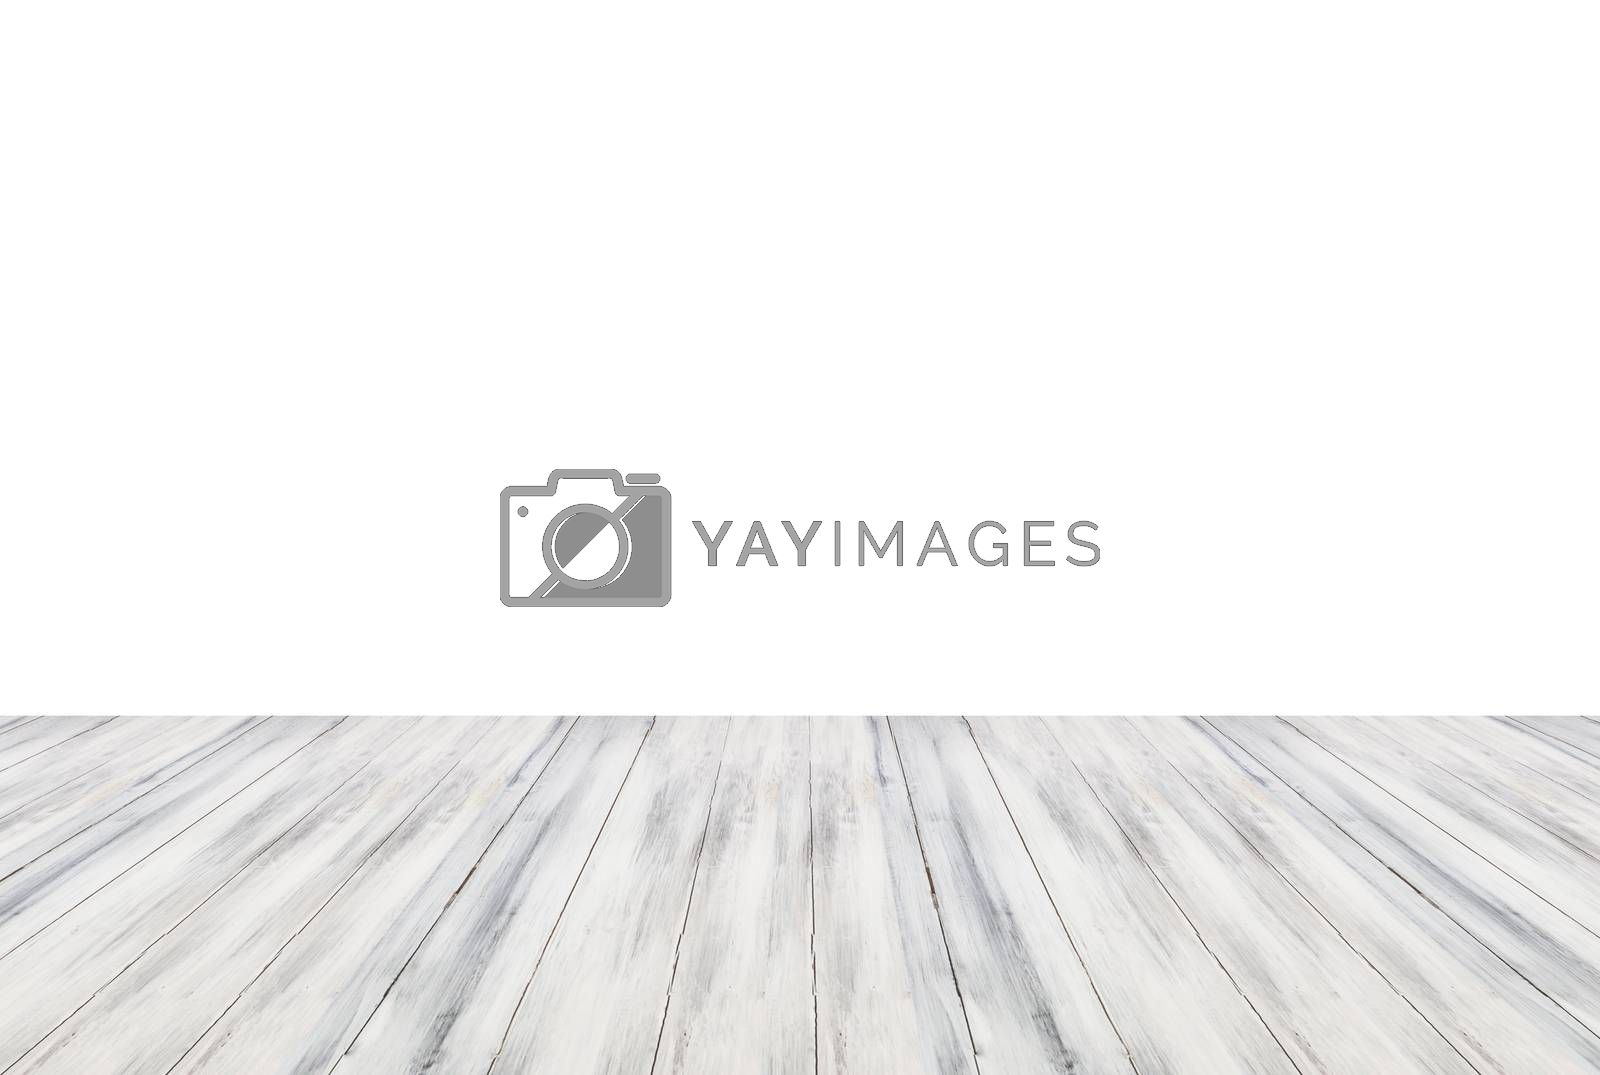 Top of wooden table or counter isolated on white background. For product display